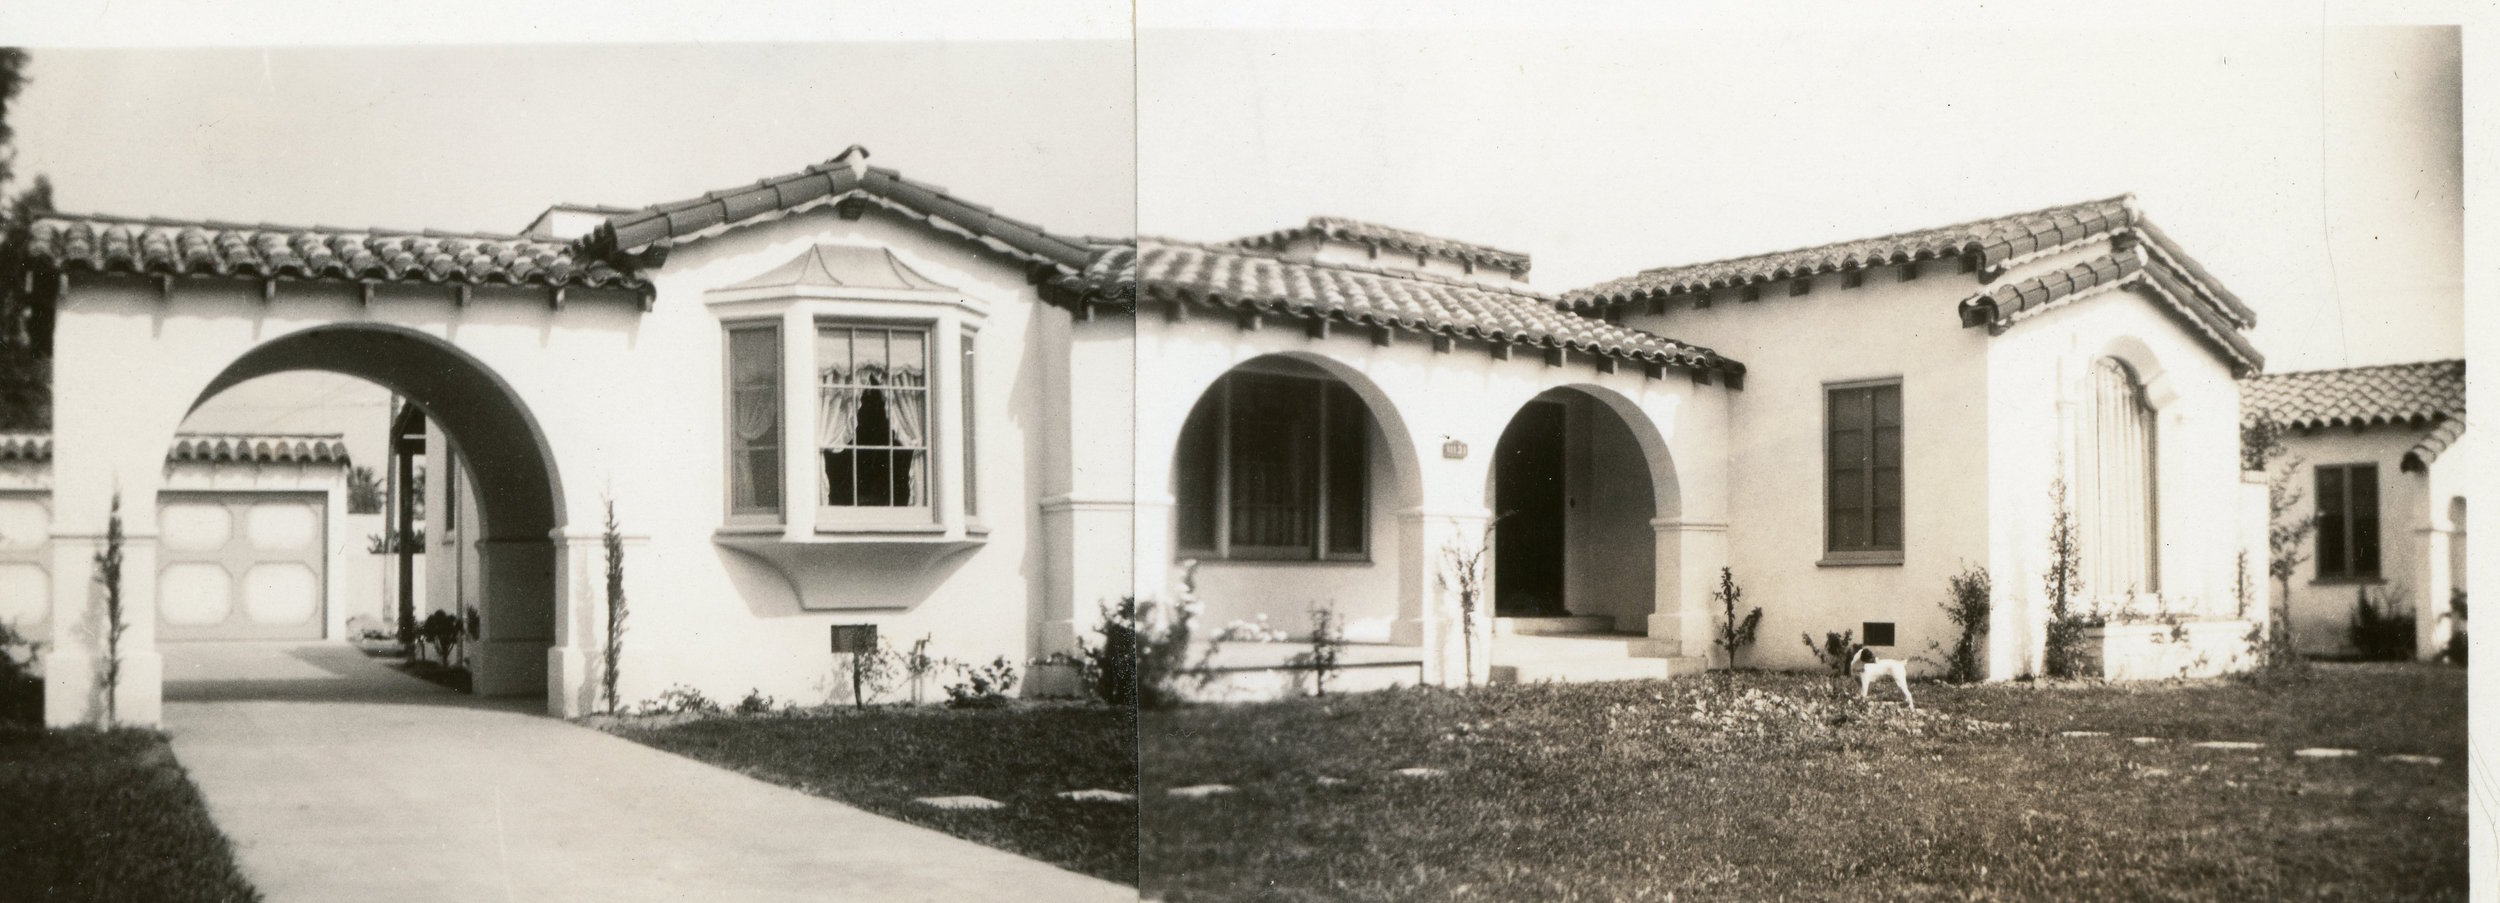 The Roadster House in 1935